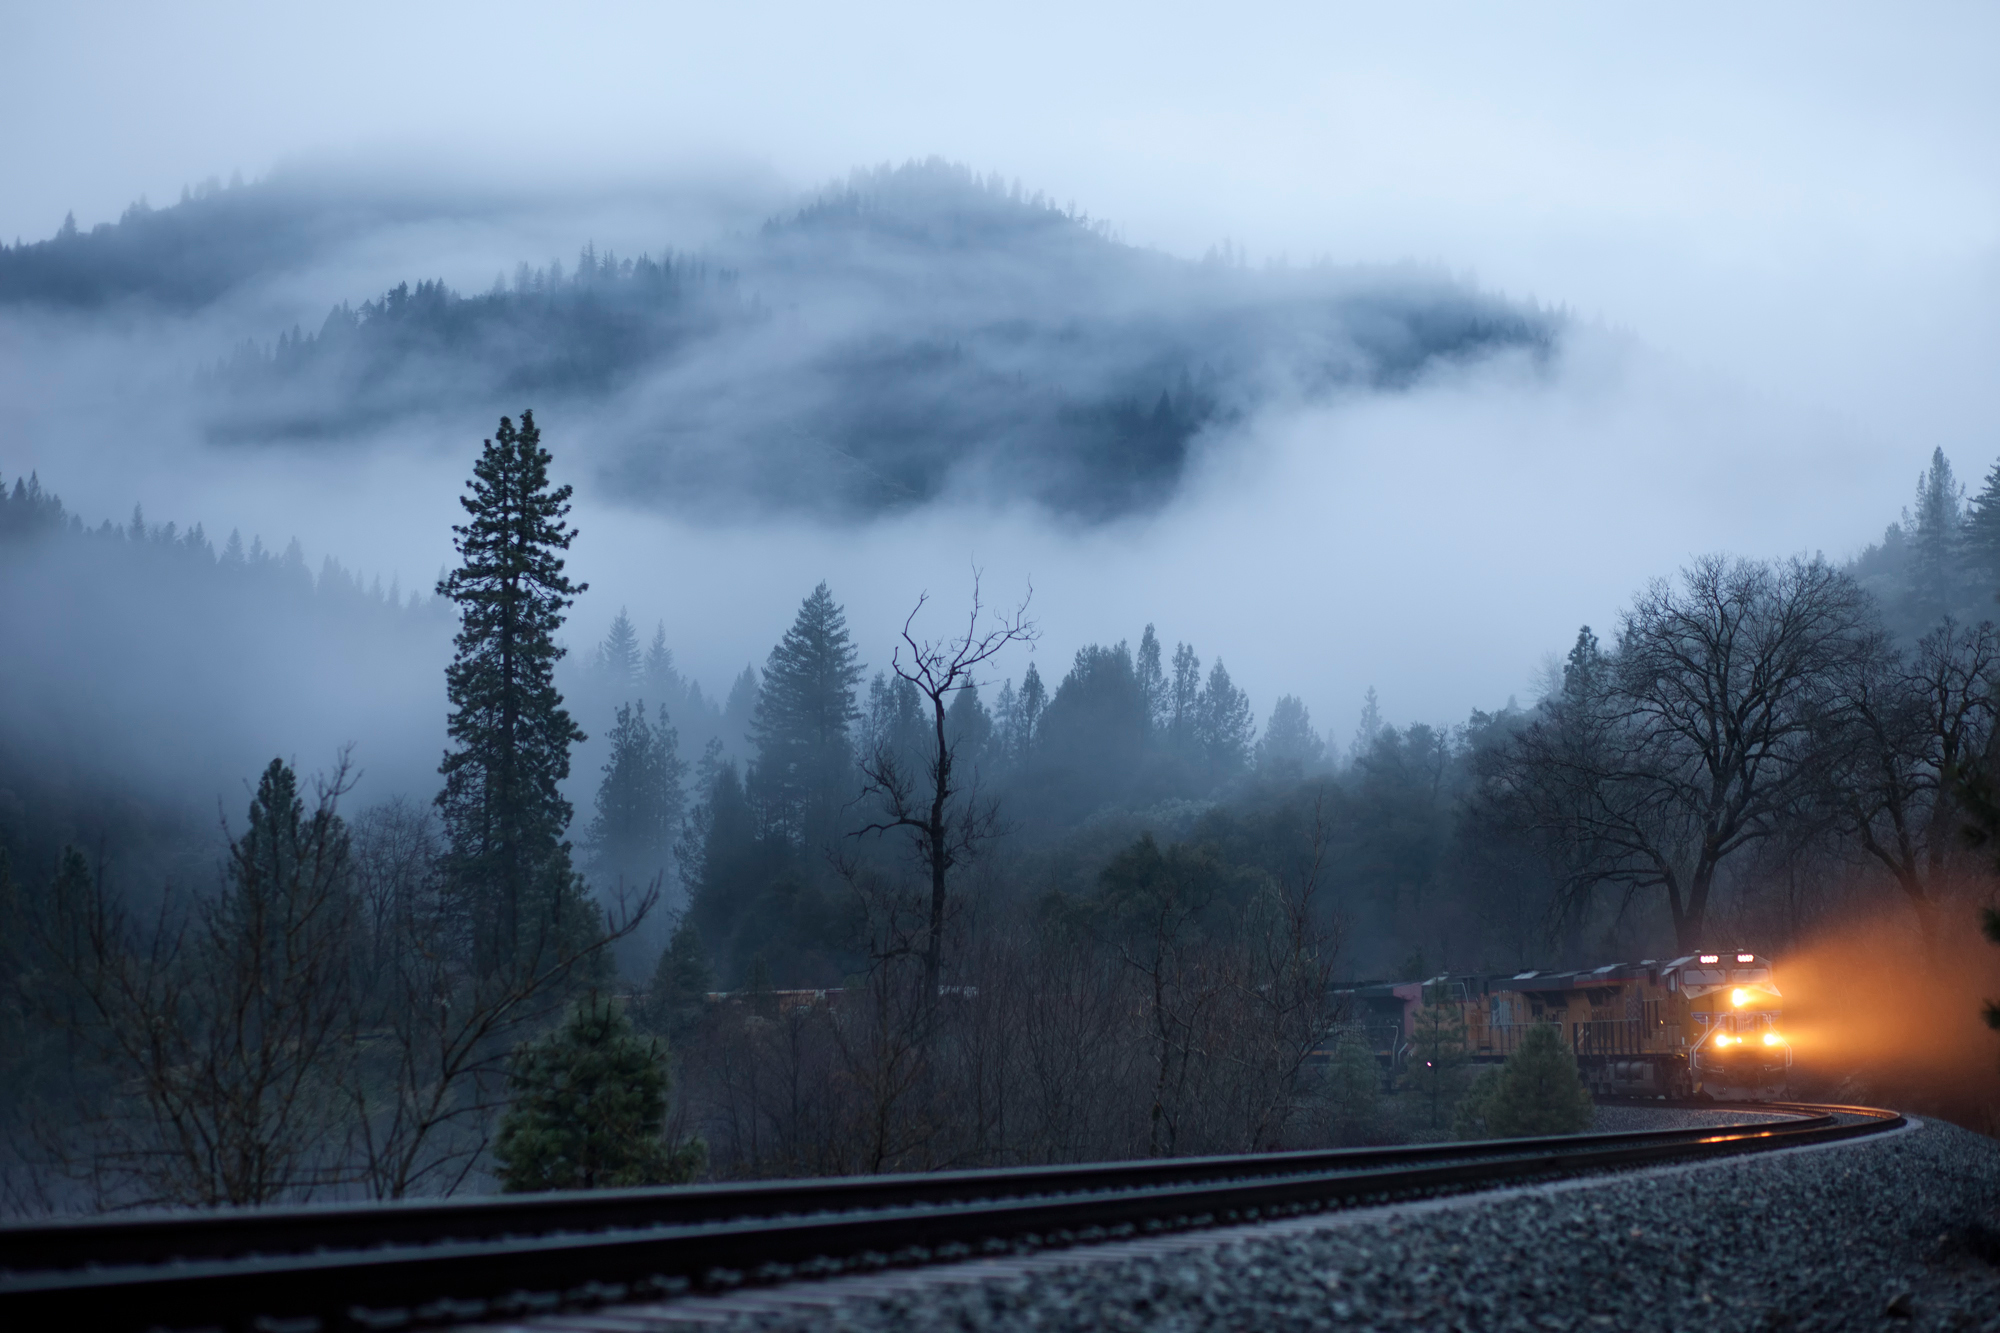 94156 download wallpaper Light, Nature, Trees, Shine, Fog, Railway, Train screensavers and pictures for free